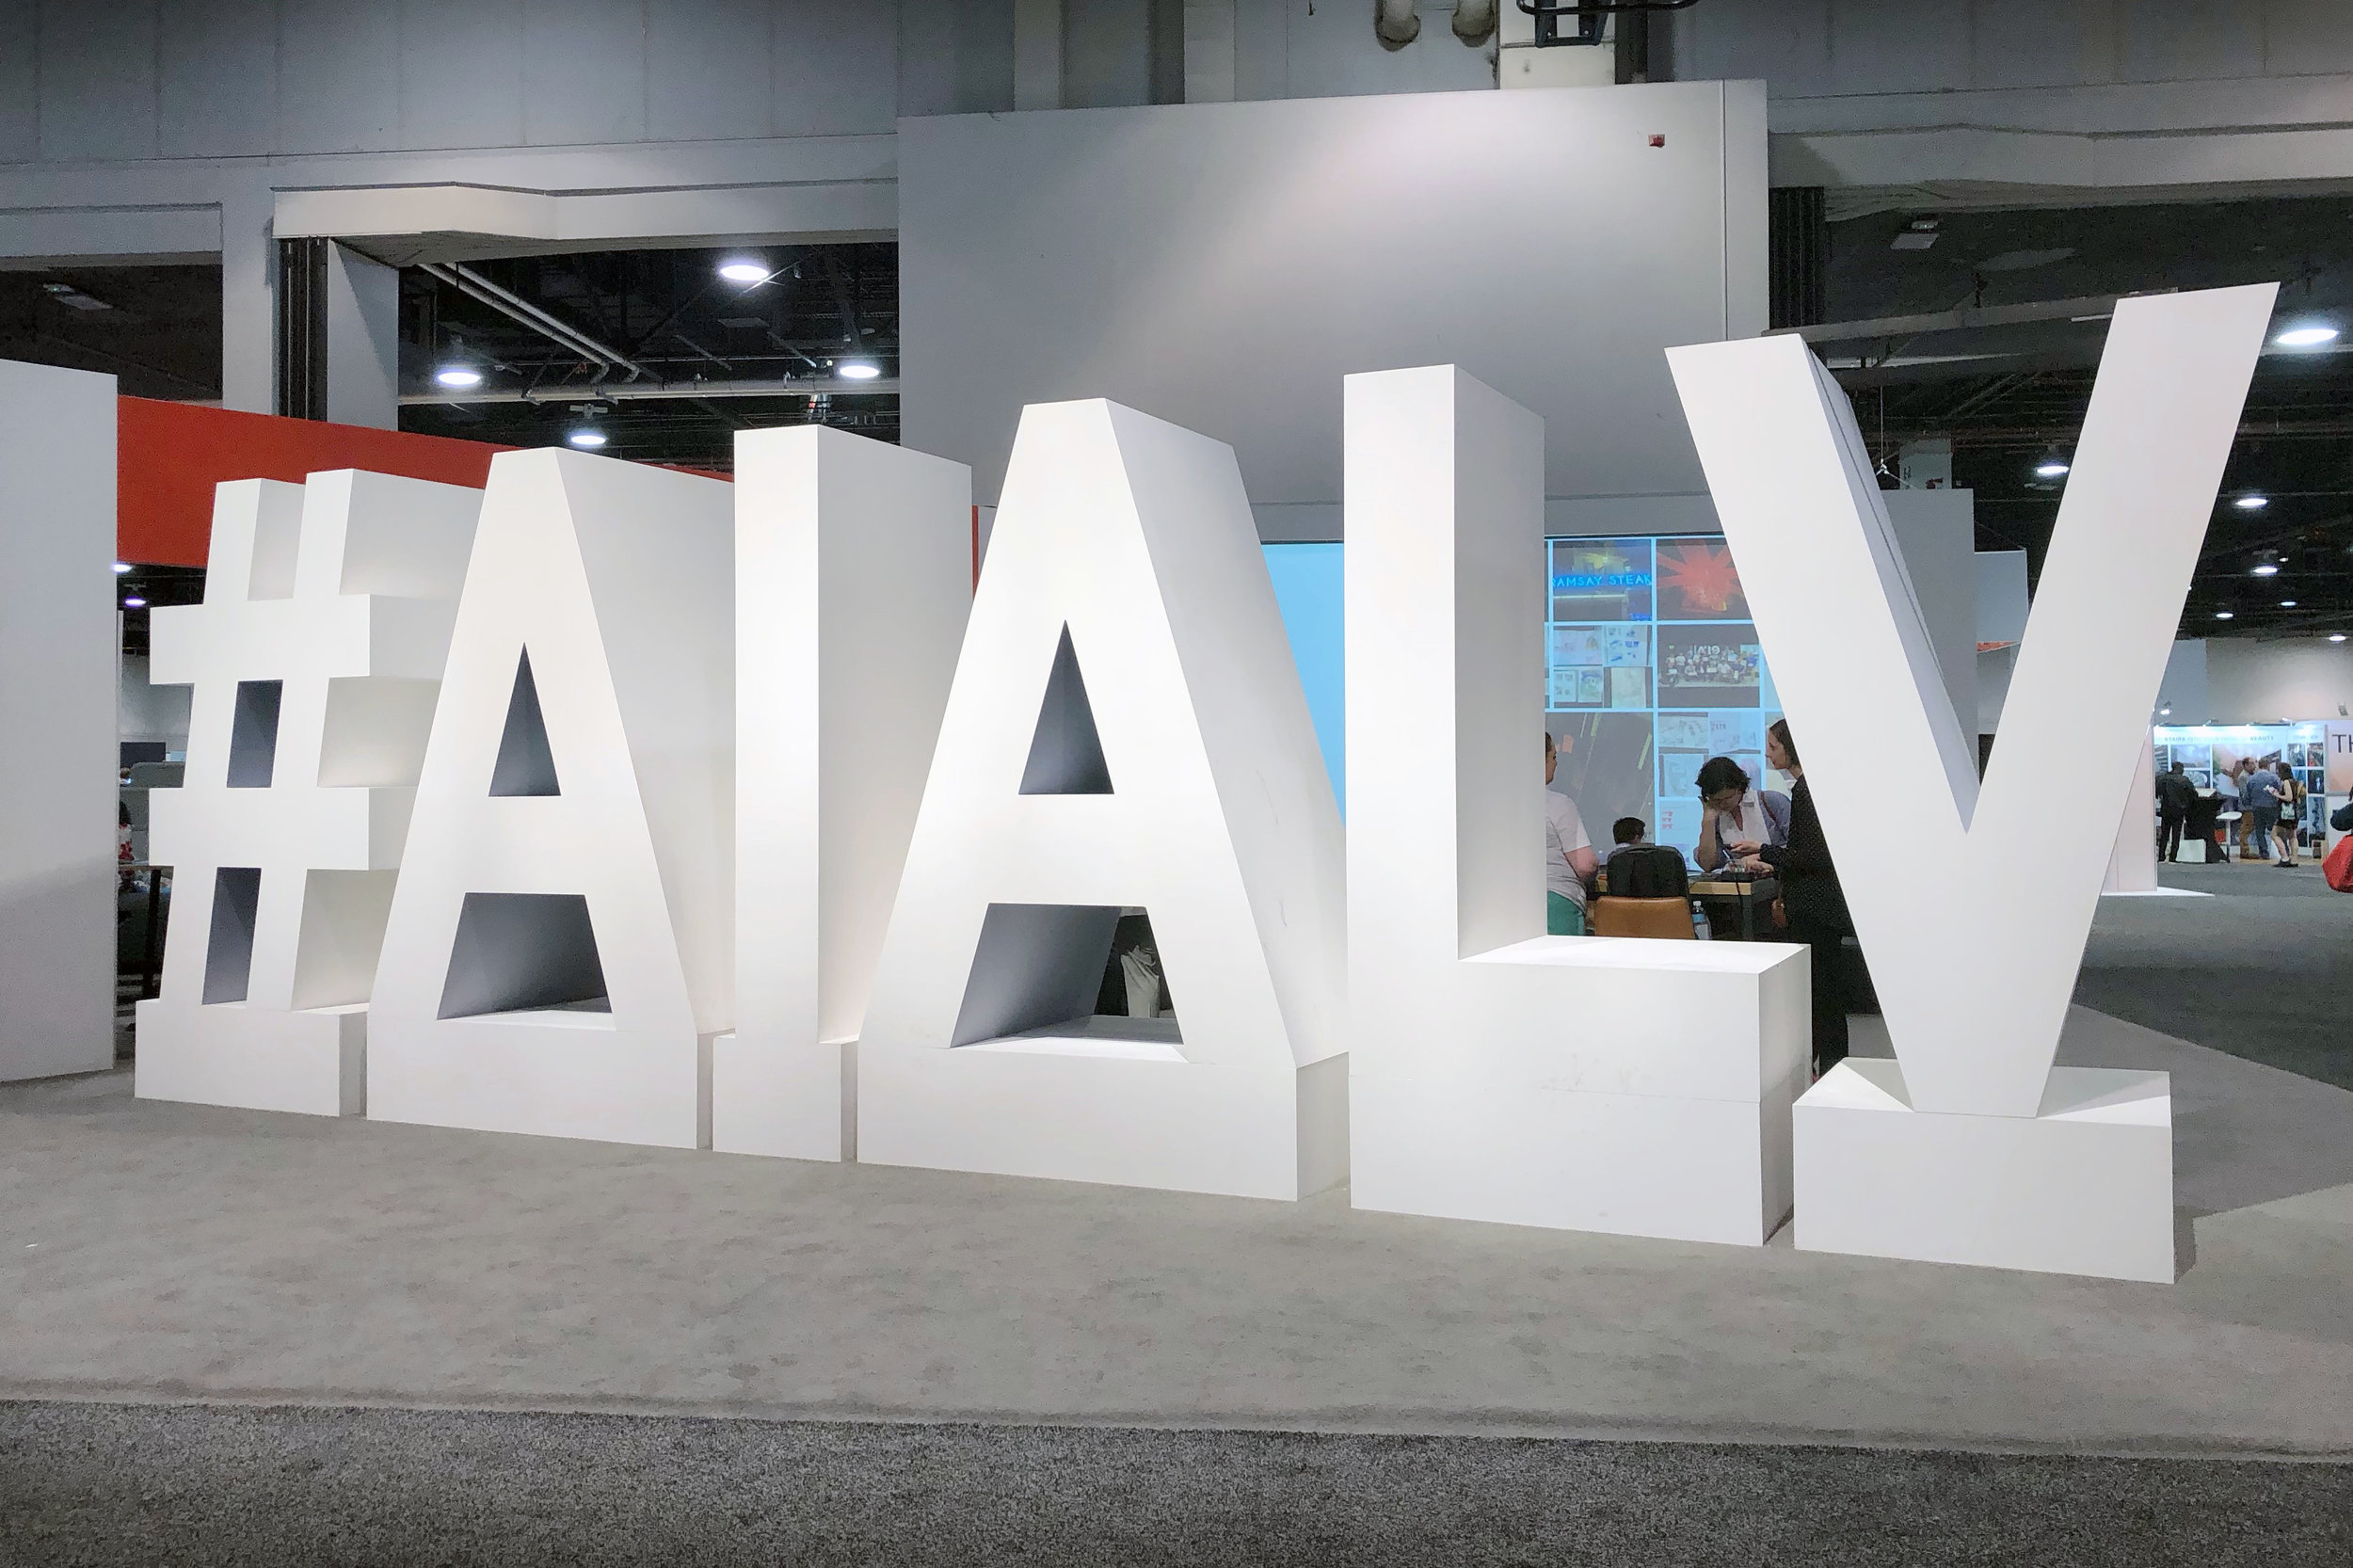 #AIALV was the hashtag for this year's AIA event.